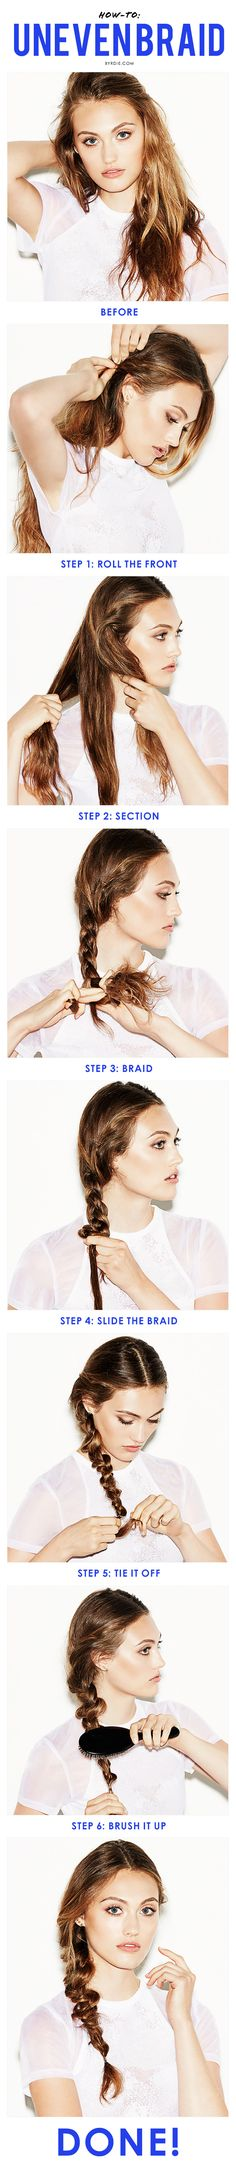 How to create a textured uneven braid (and look totally chic).